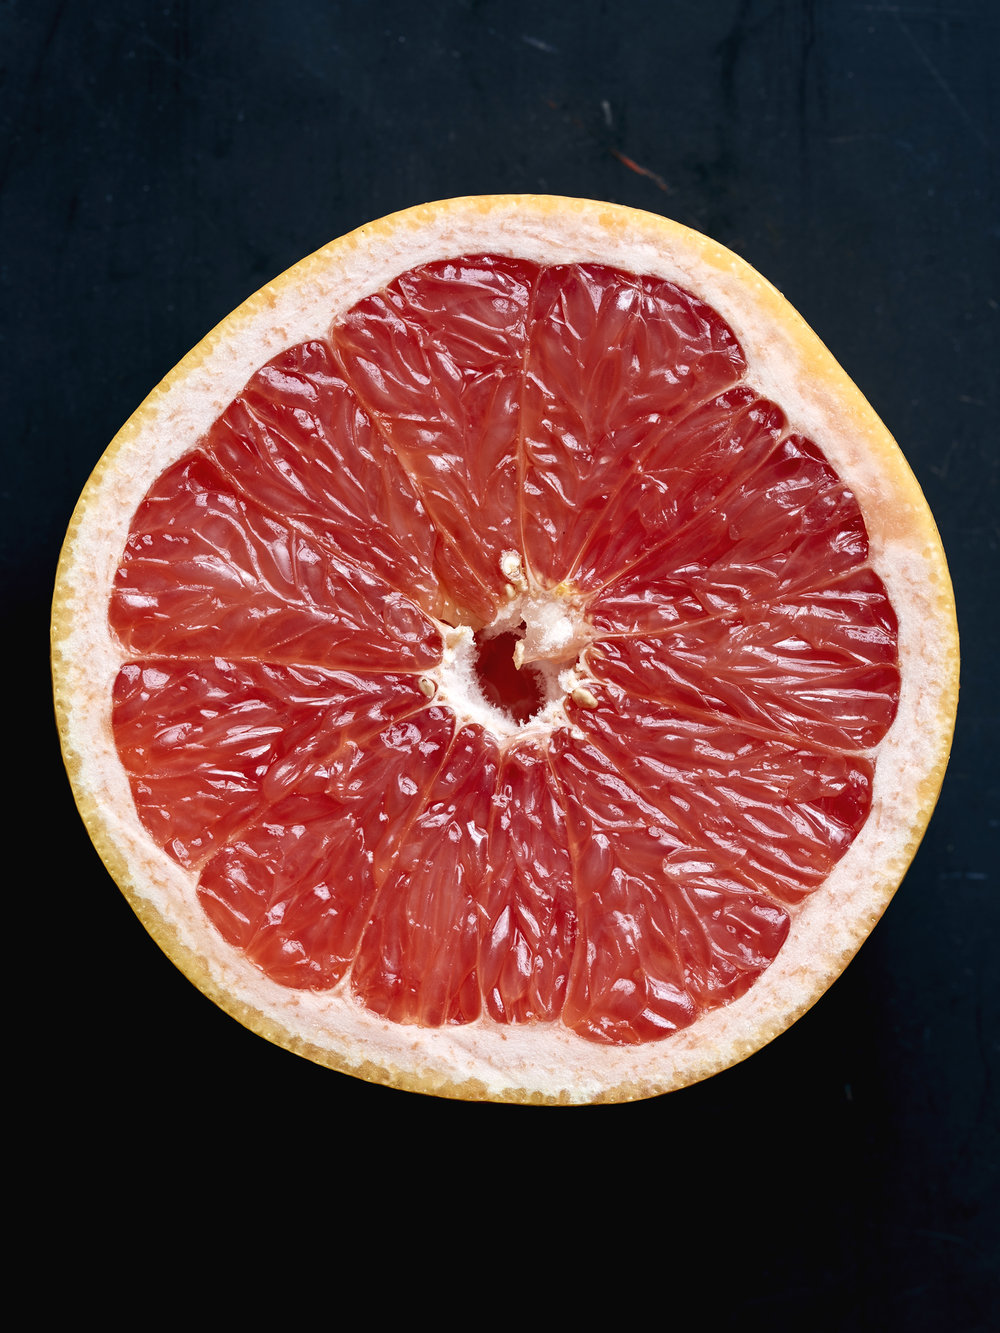 0216_Citrus_Grapefruit_074 copy.jpg